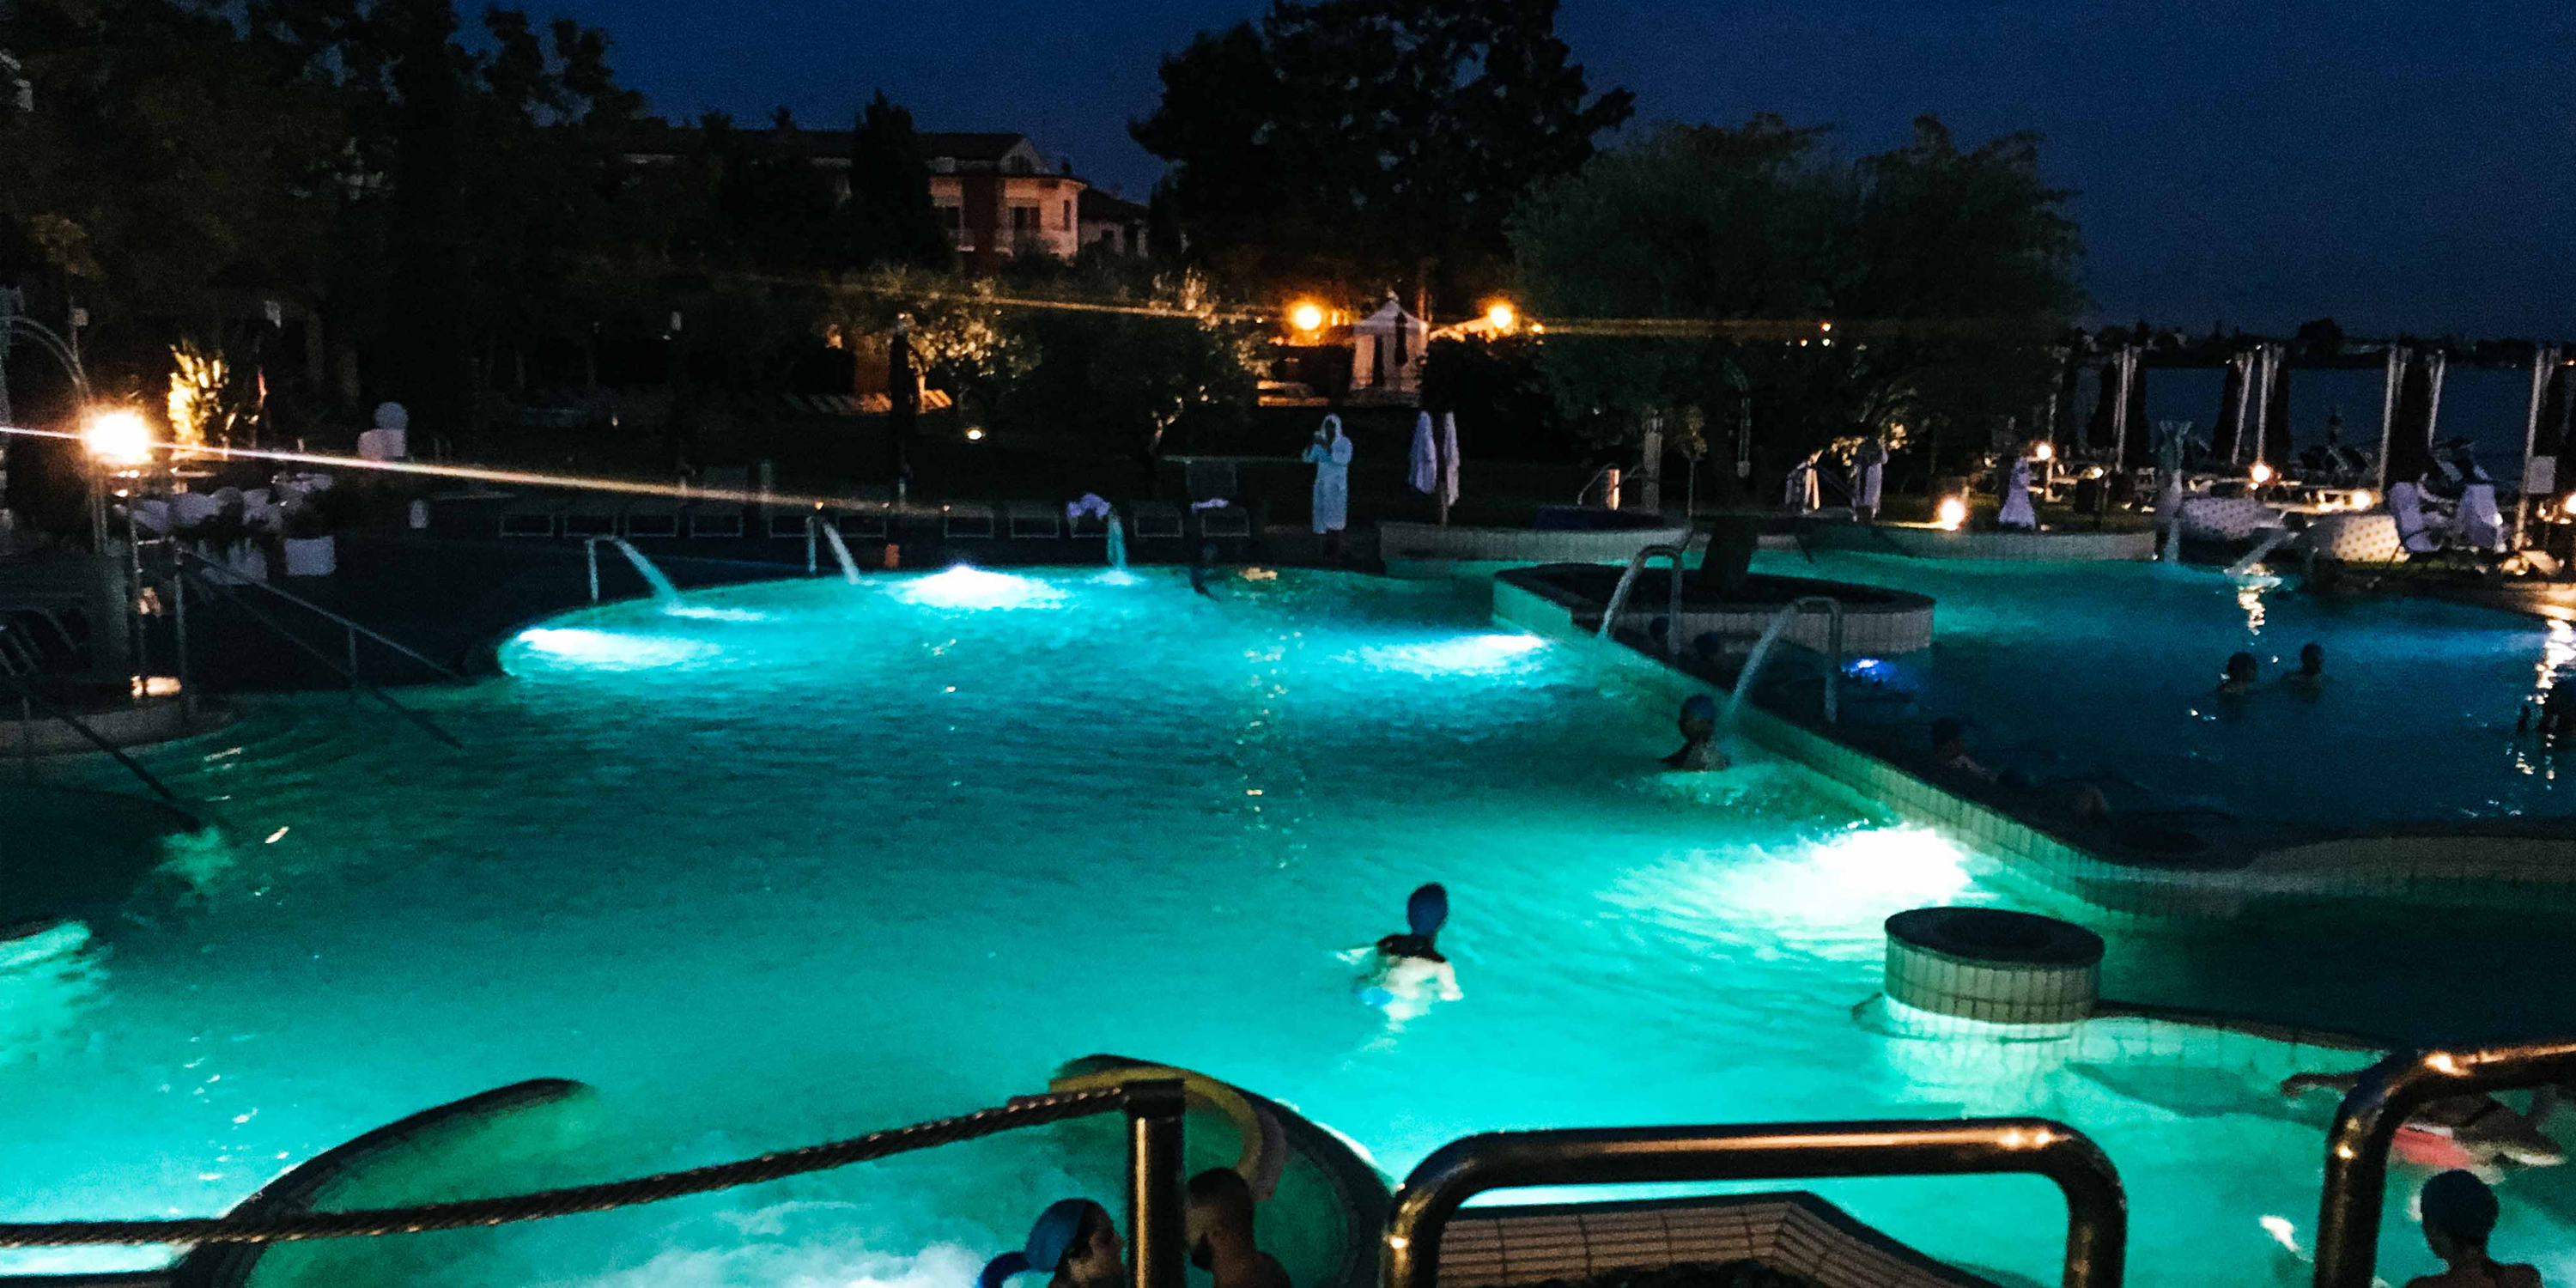 Aquaria thermal spa a sirmione lovers in the world - Hotel sirmione con piscina termale ...